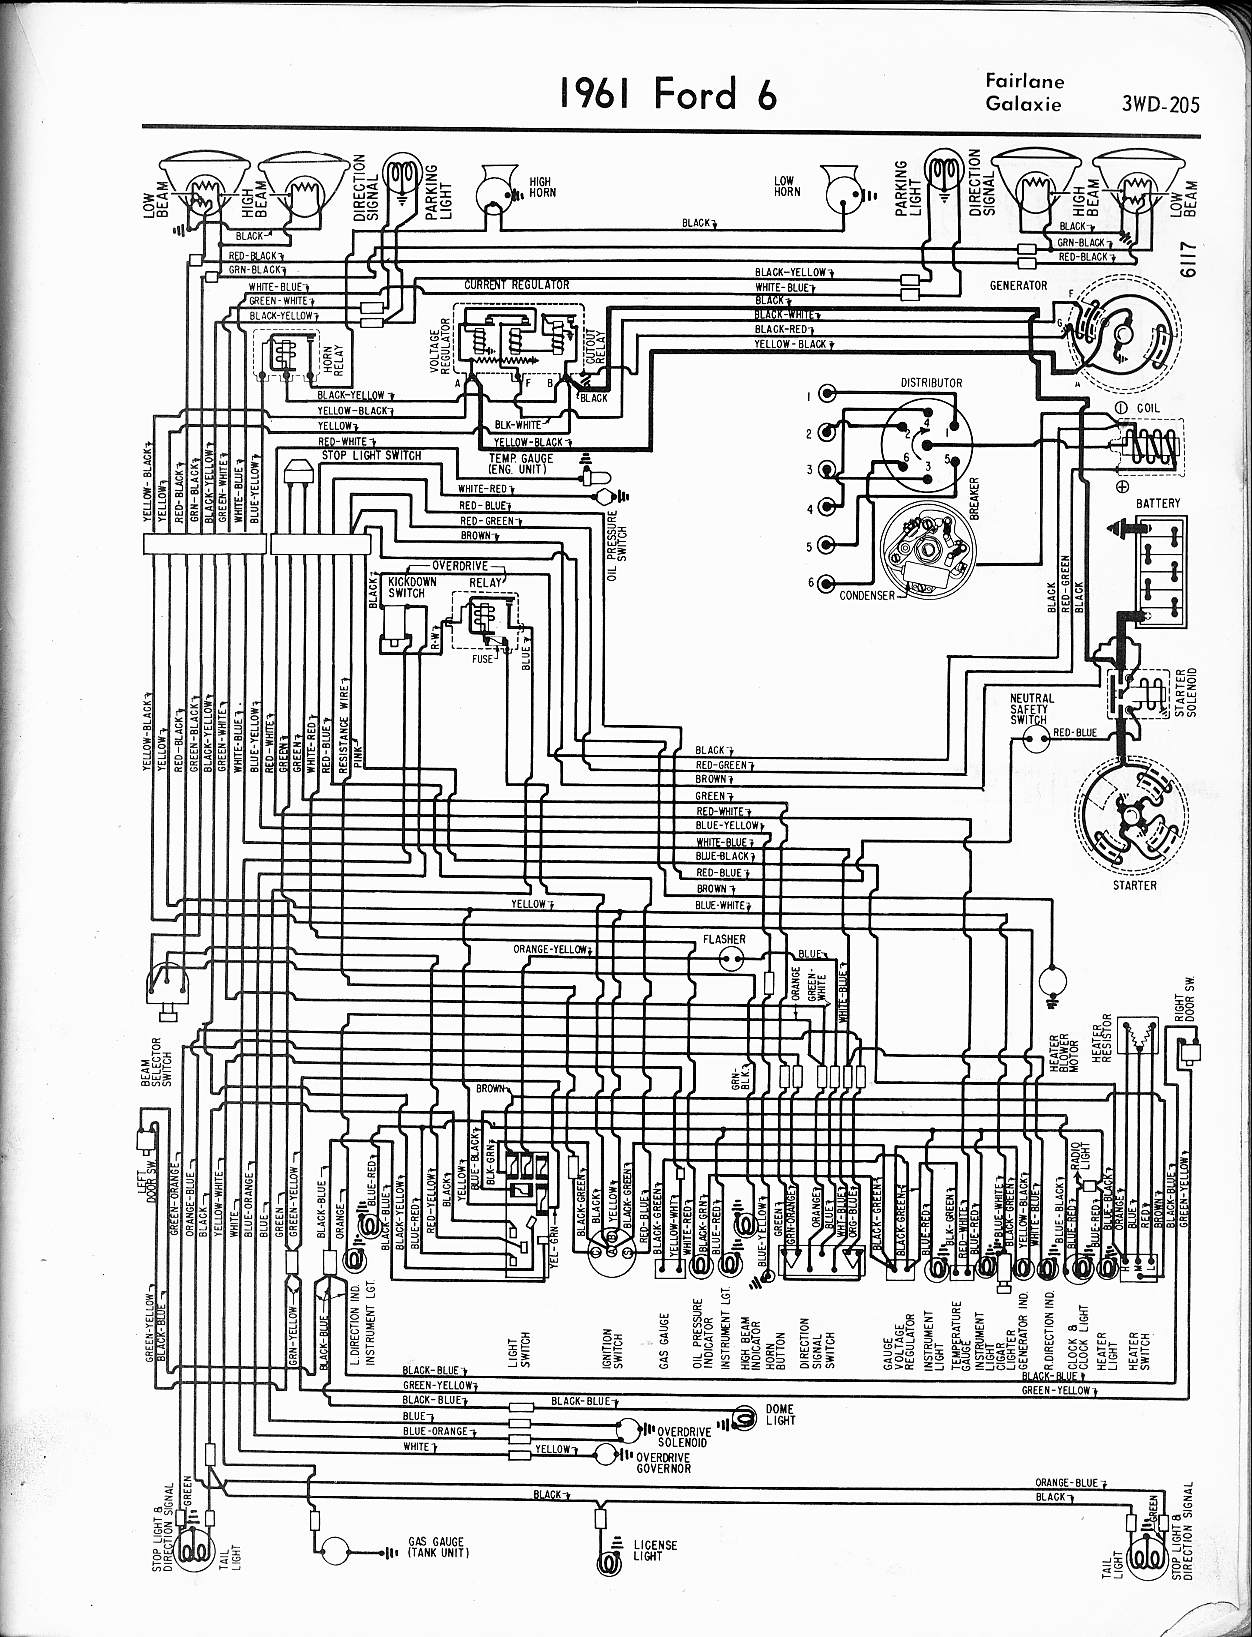 Ford Generator Wiring Diagrams Cooling Fan Diagram On Basic Alternator 57 65 12v 1961 6 Cyl Fairlane Galaxie